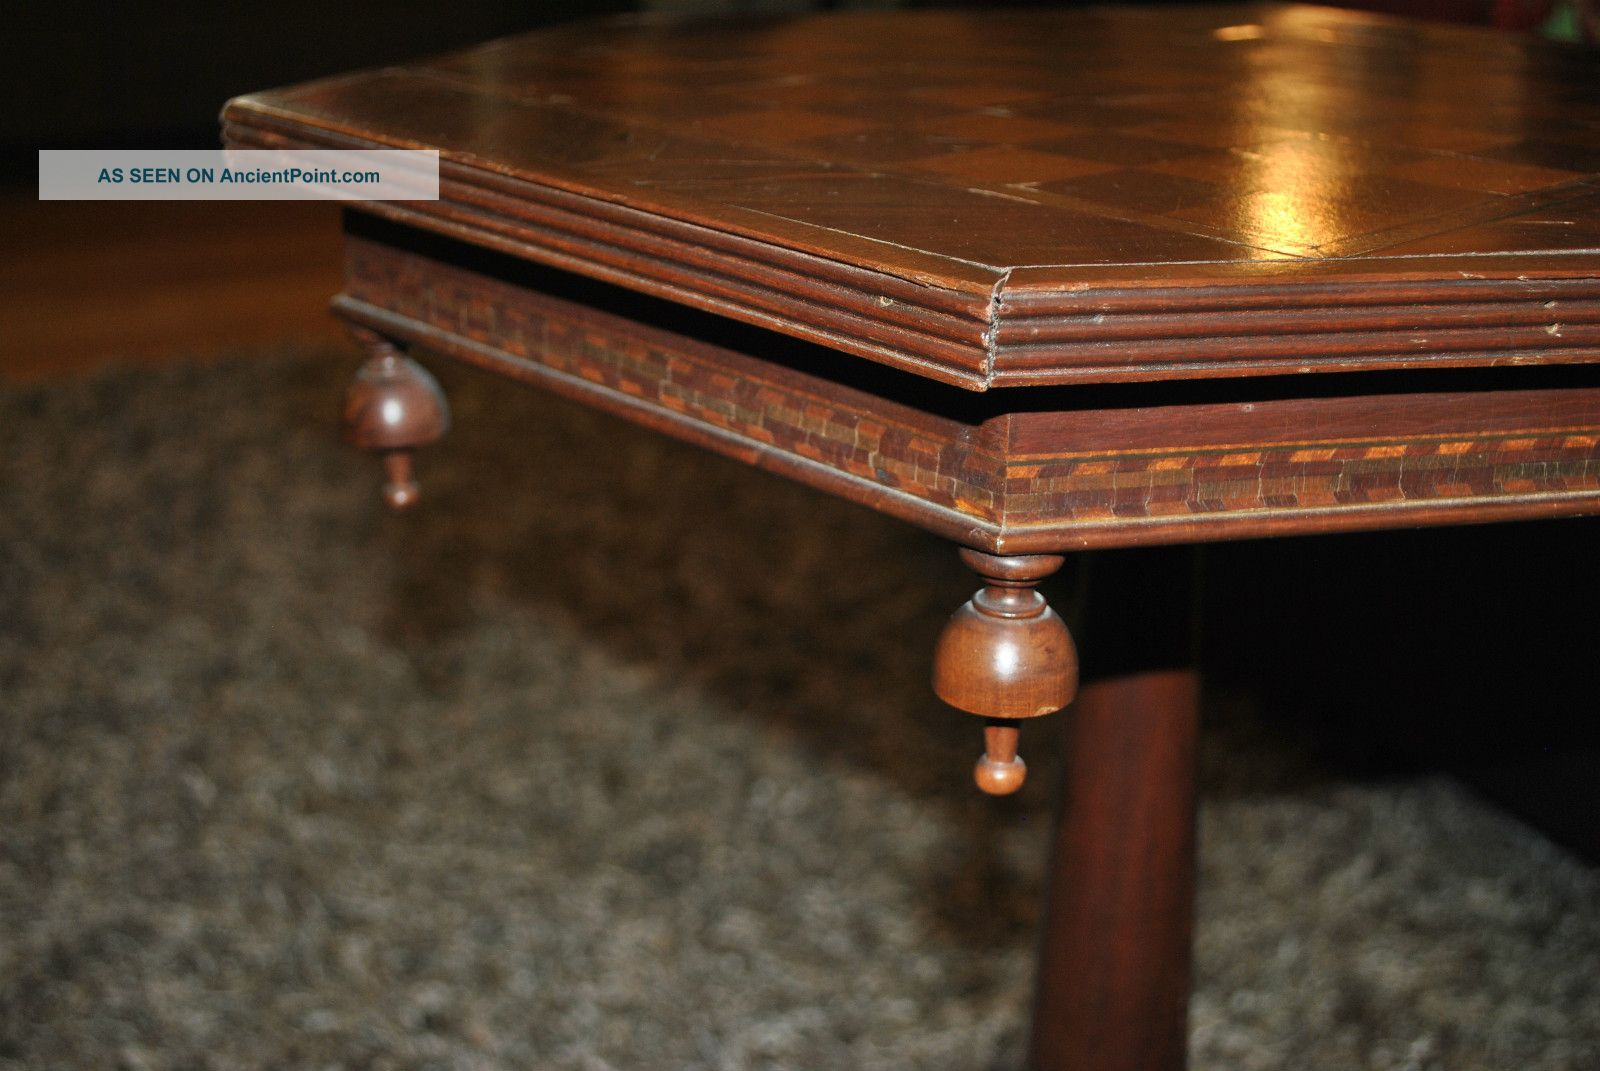 Victorian 19th C.  Inlaid Checkerboard Ornate End Table - Sturdy 1800-1899 photo